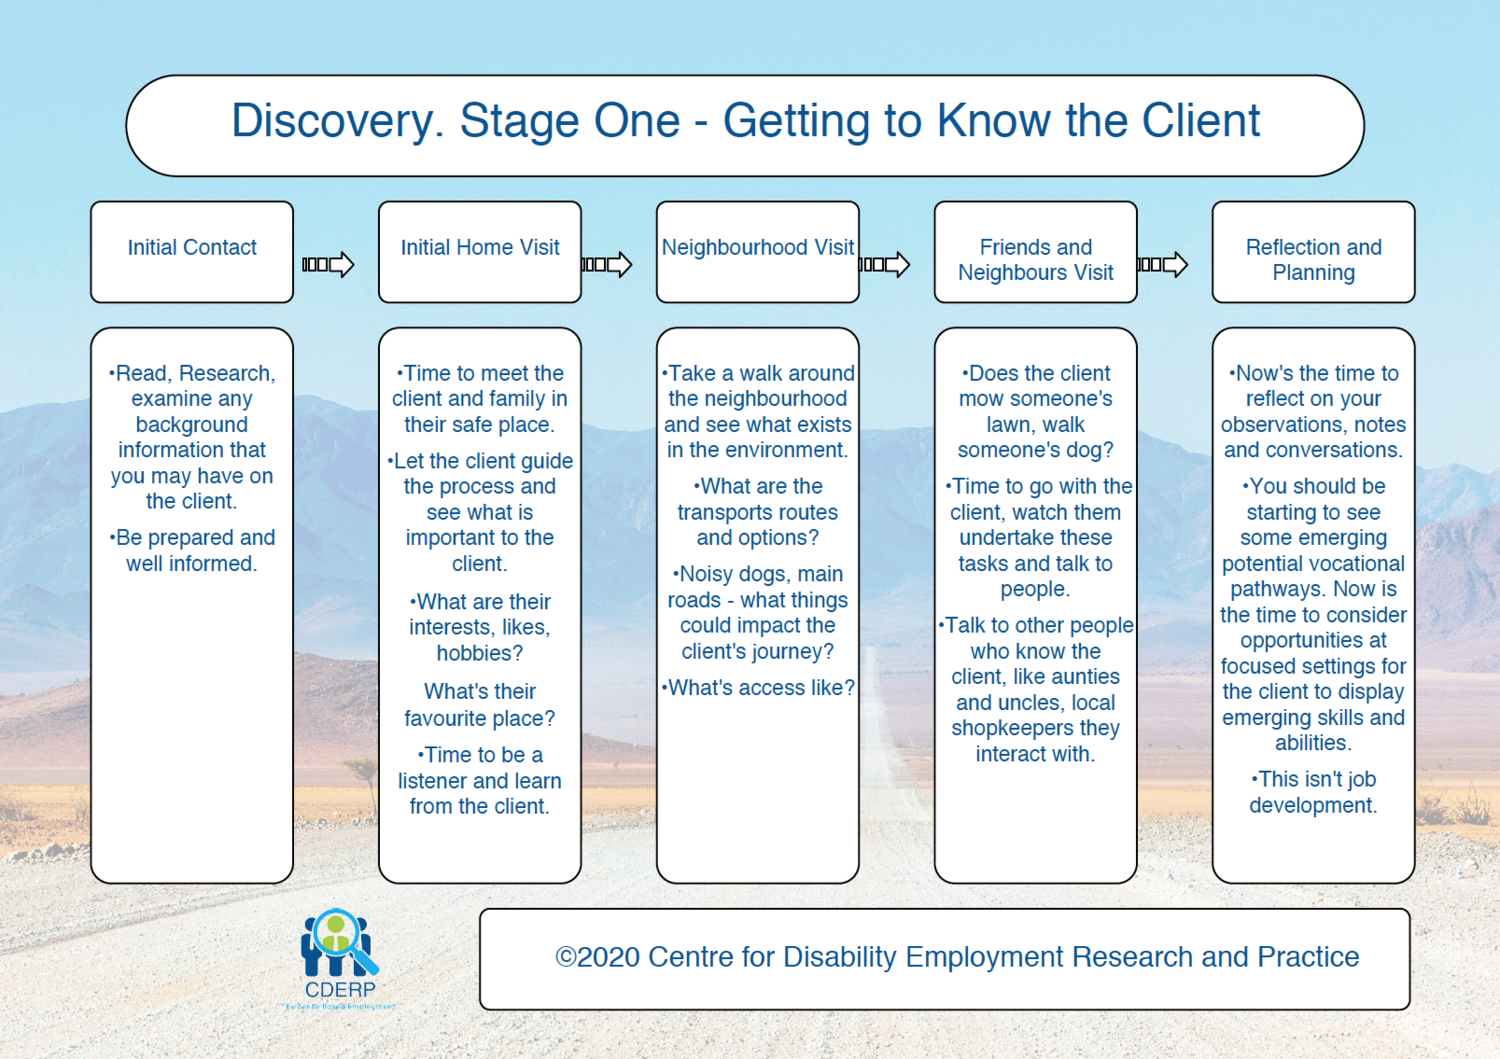 Discovery Stage One Chart - Getting to Know the Client ©